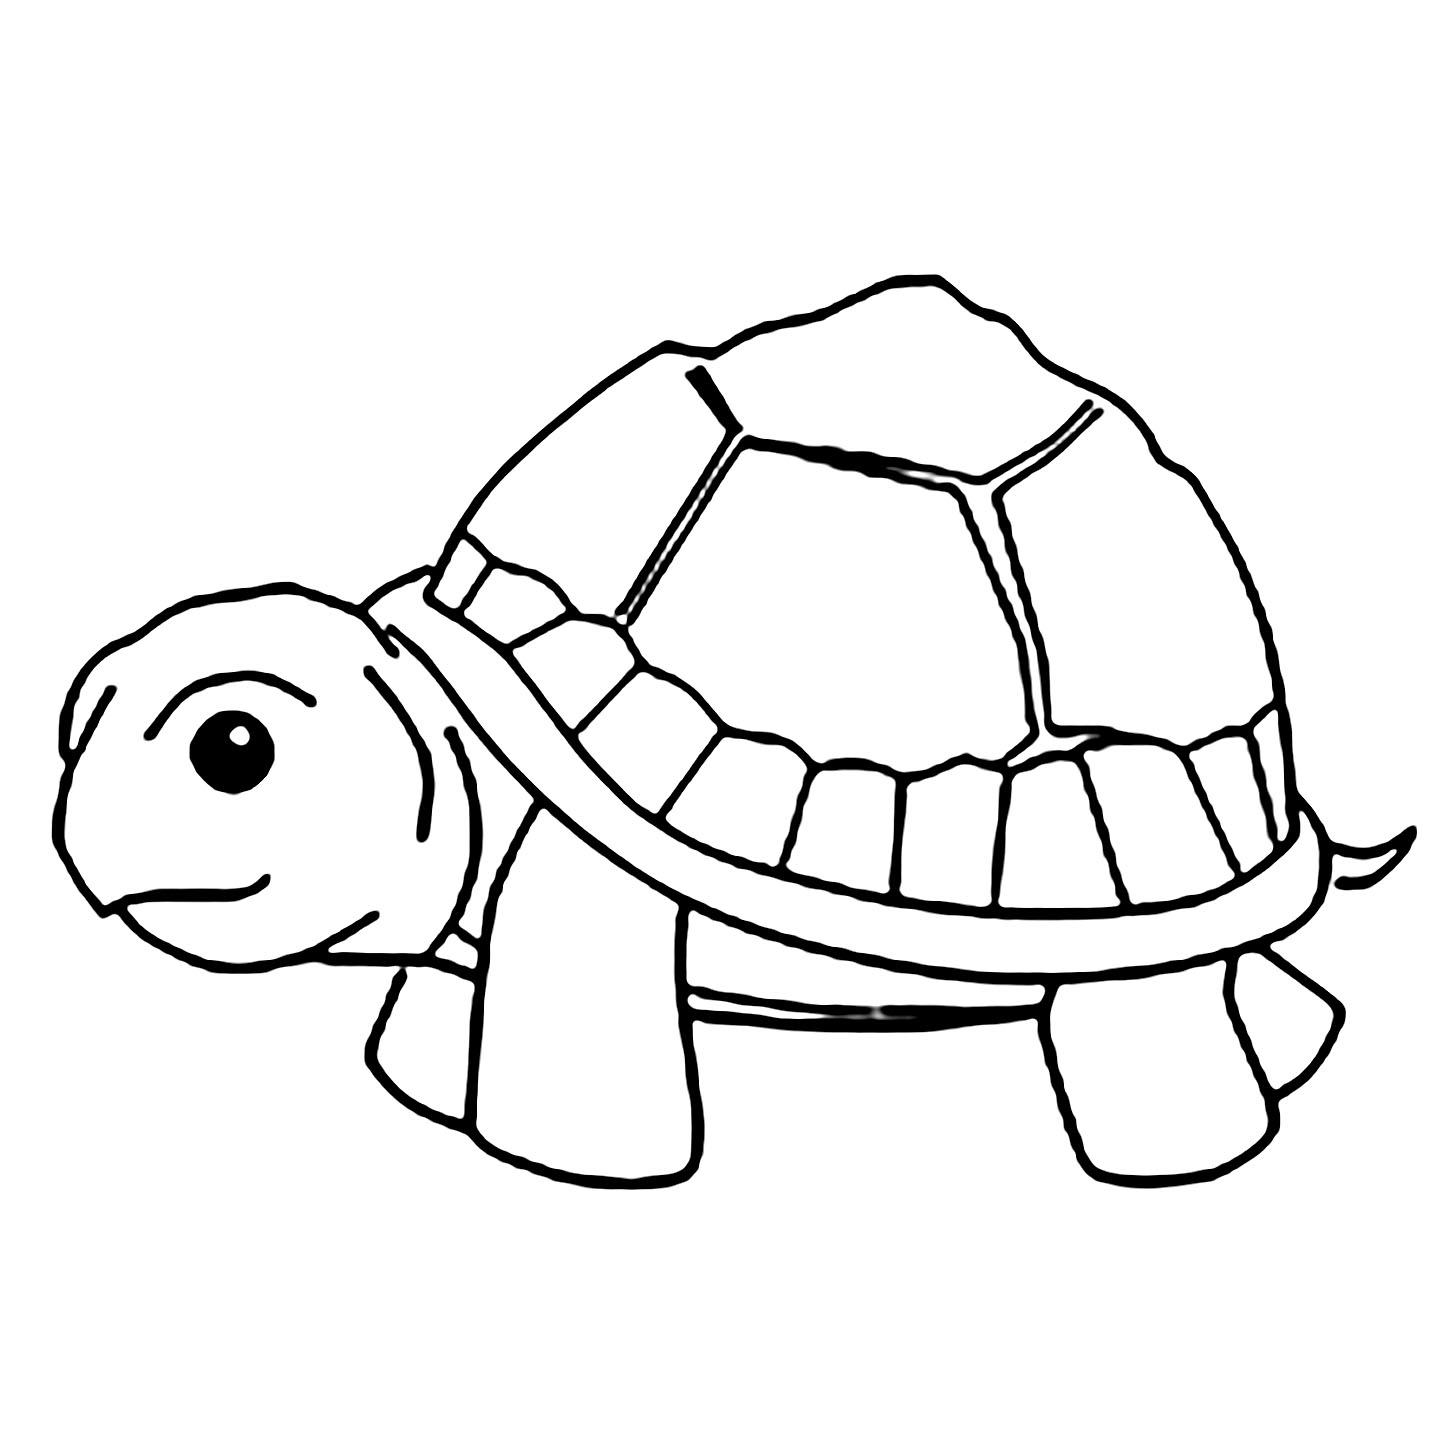 turtle pictures to color sea turtle clipart black and white clipart panda free turtle color to pictures